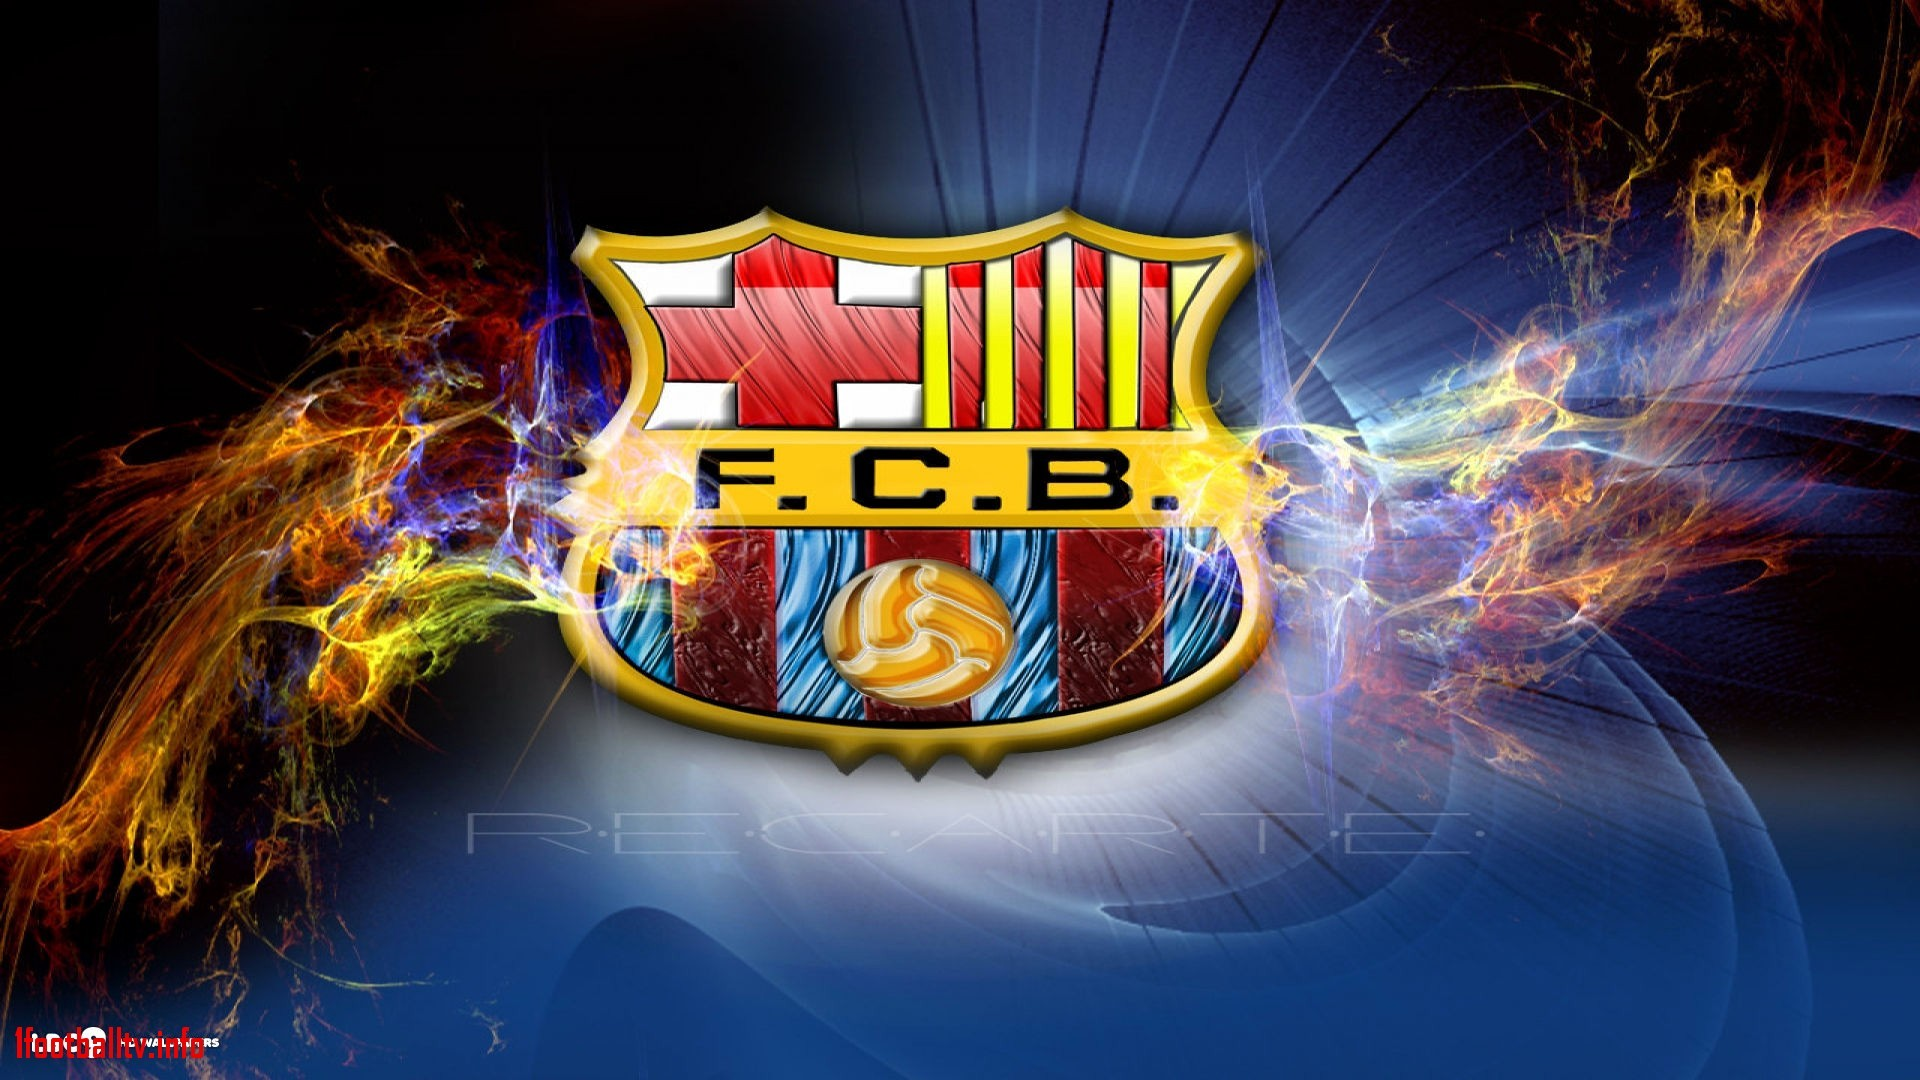 1920x1080 Lovely Fc Barcelona Wallpapers Hd 1080p. Download · 1080x1920 Download